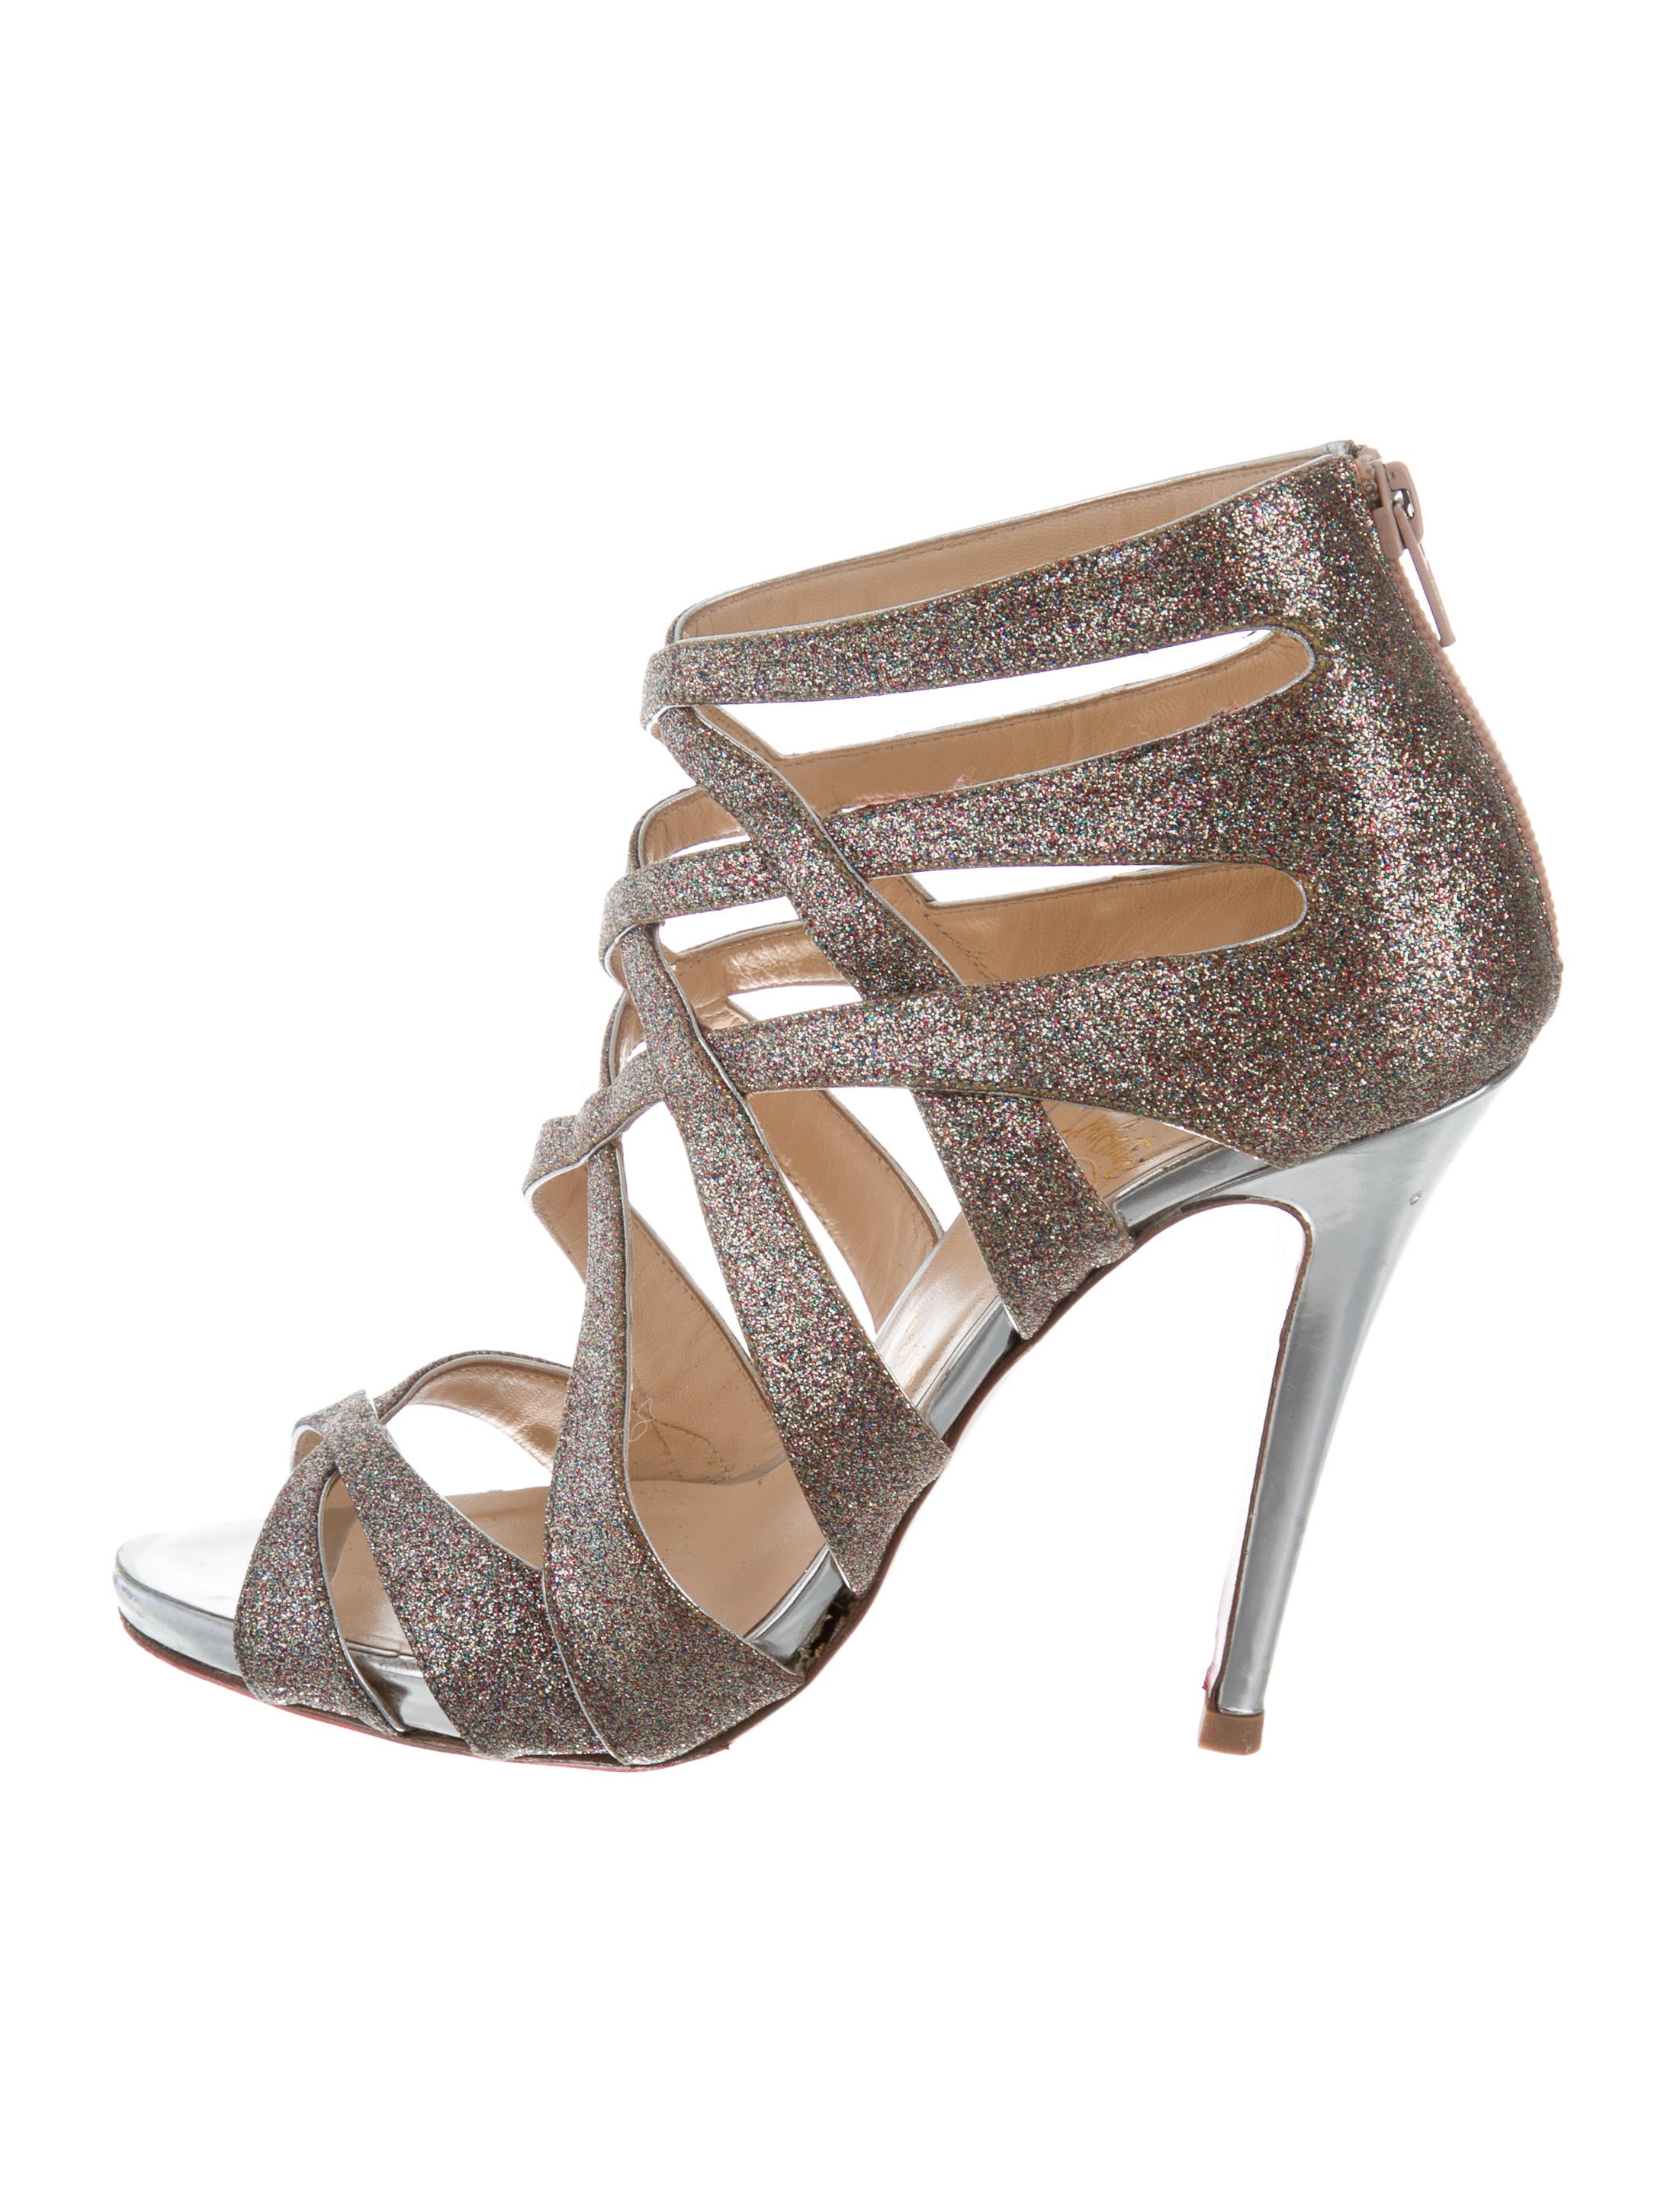 37076531d1f ... best price christian louboutin glitter caged sandals pictures cheap  price new styles cheap price choice sale